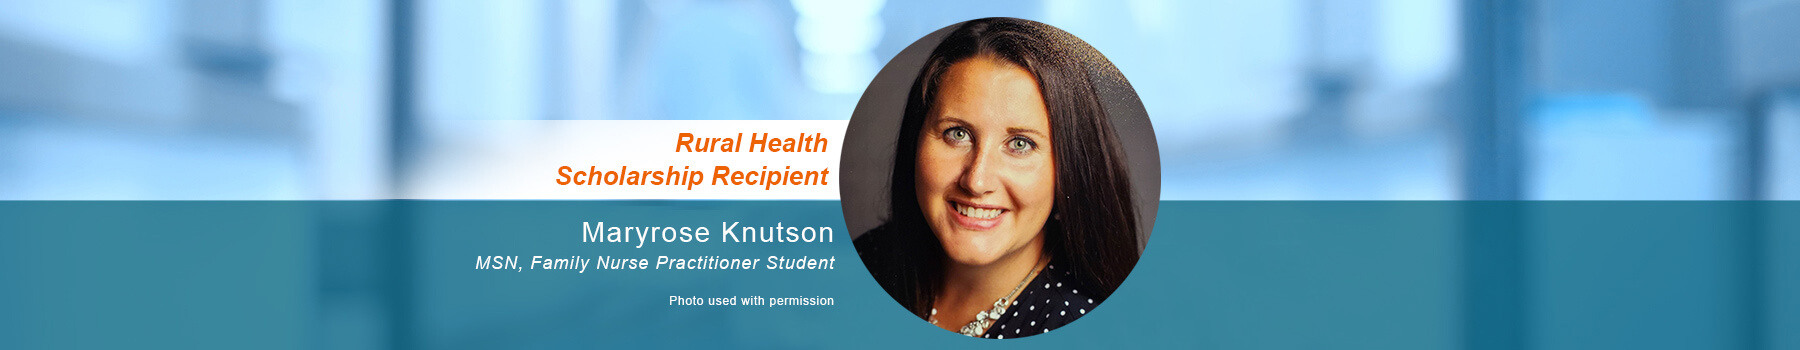 Maryrose Knutson | Director of Inpatient Services, Catholic Health Initiatives St. Gabriel's Hospital